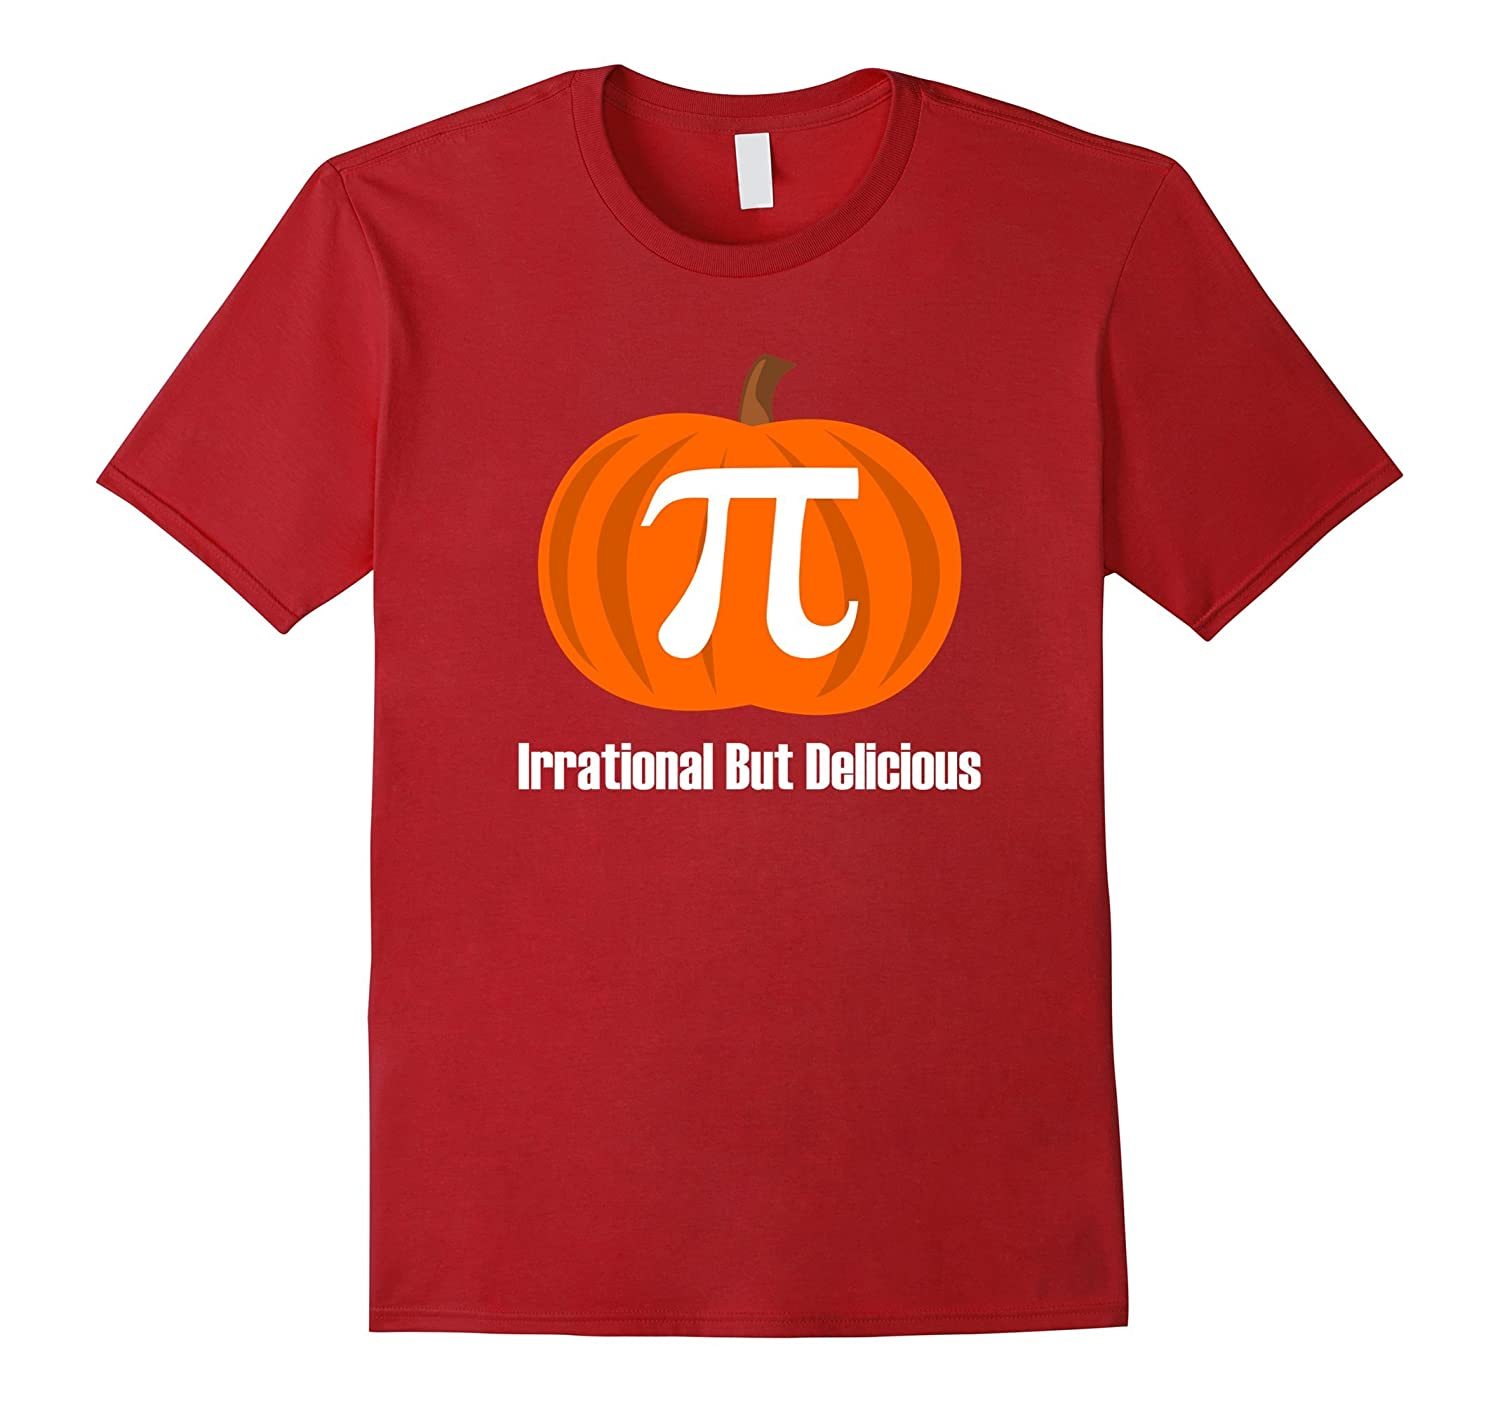 33bd0bca Pi Tee | Pumpkin Pie T-Shirt | Irrational But Delicious-ANZ ⋆ Anztshirt